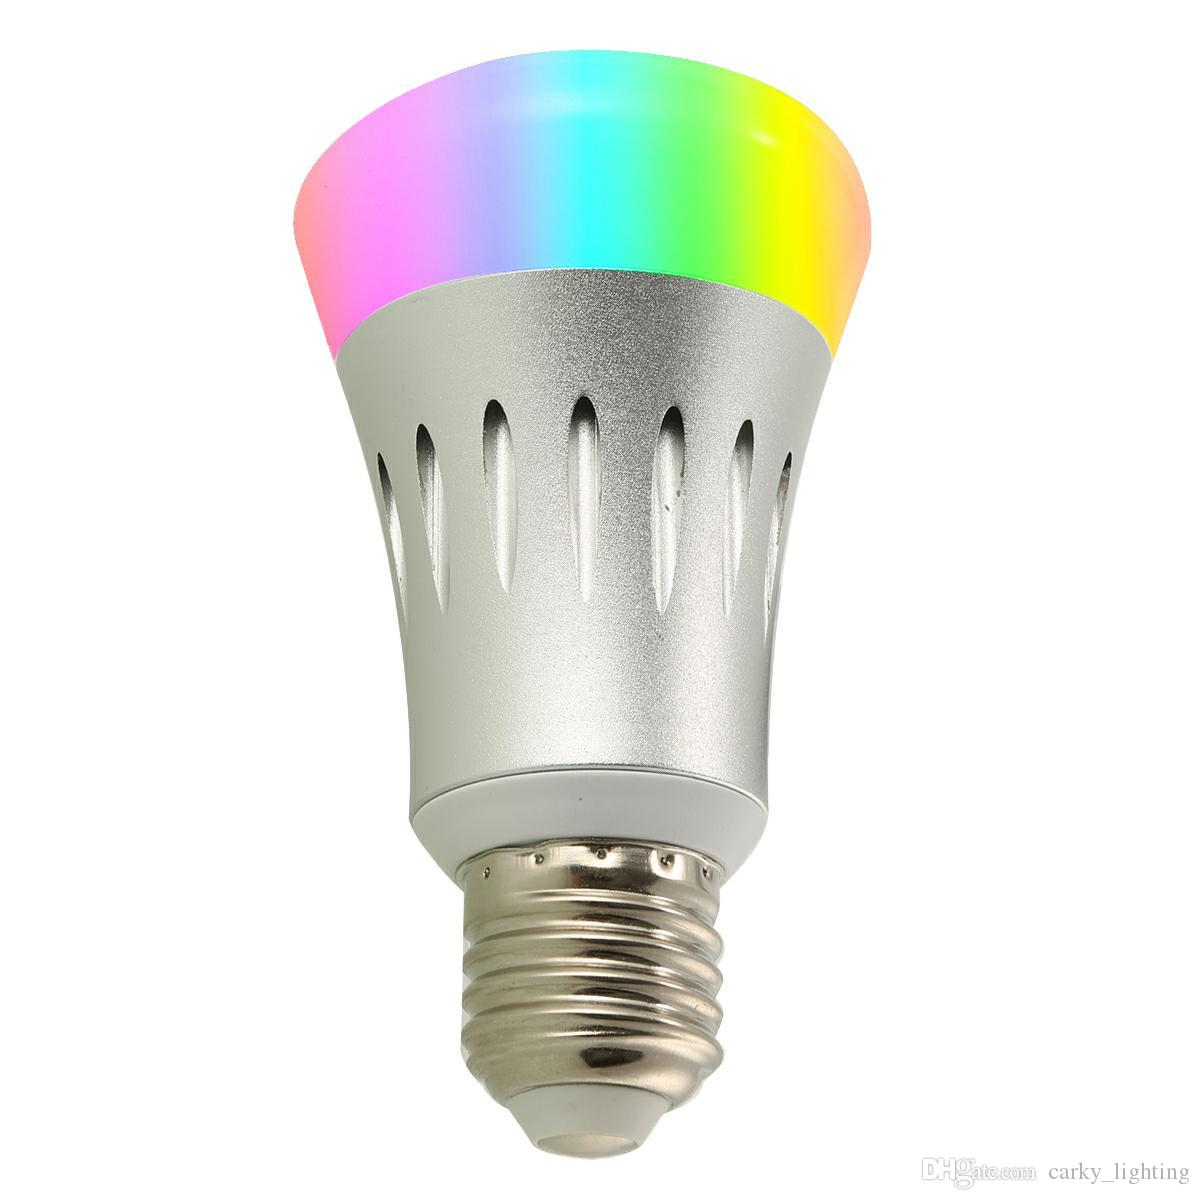 7W Smart WIFI Light Bulb,Works with Alexa,Multicolored LED Bulbs,LED Light  Bulbs Dimmable,Smartphone Controlled Daylight & Night Light